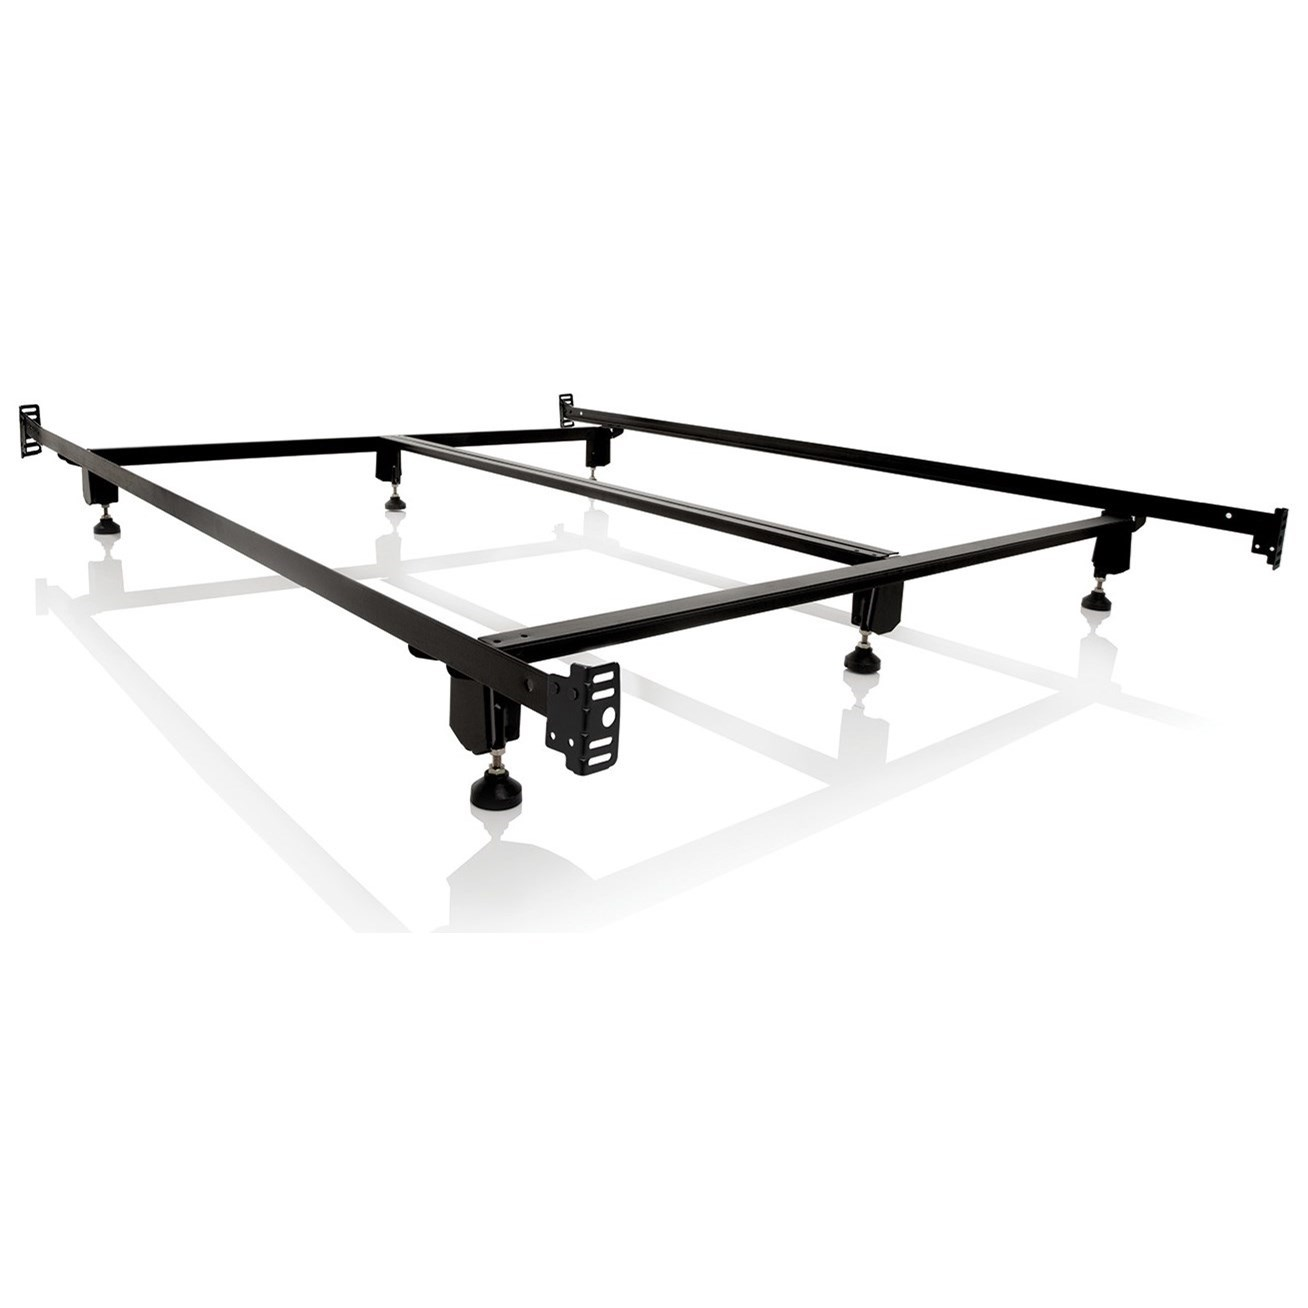 Steelock King Steelock Bolt-On Bed Frame by Malouf at Standard Furniture